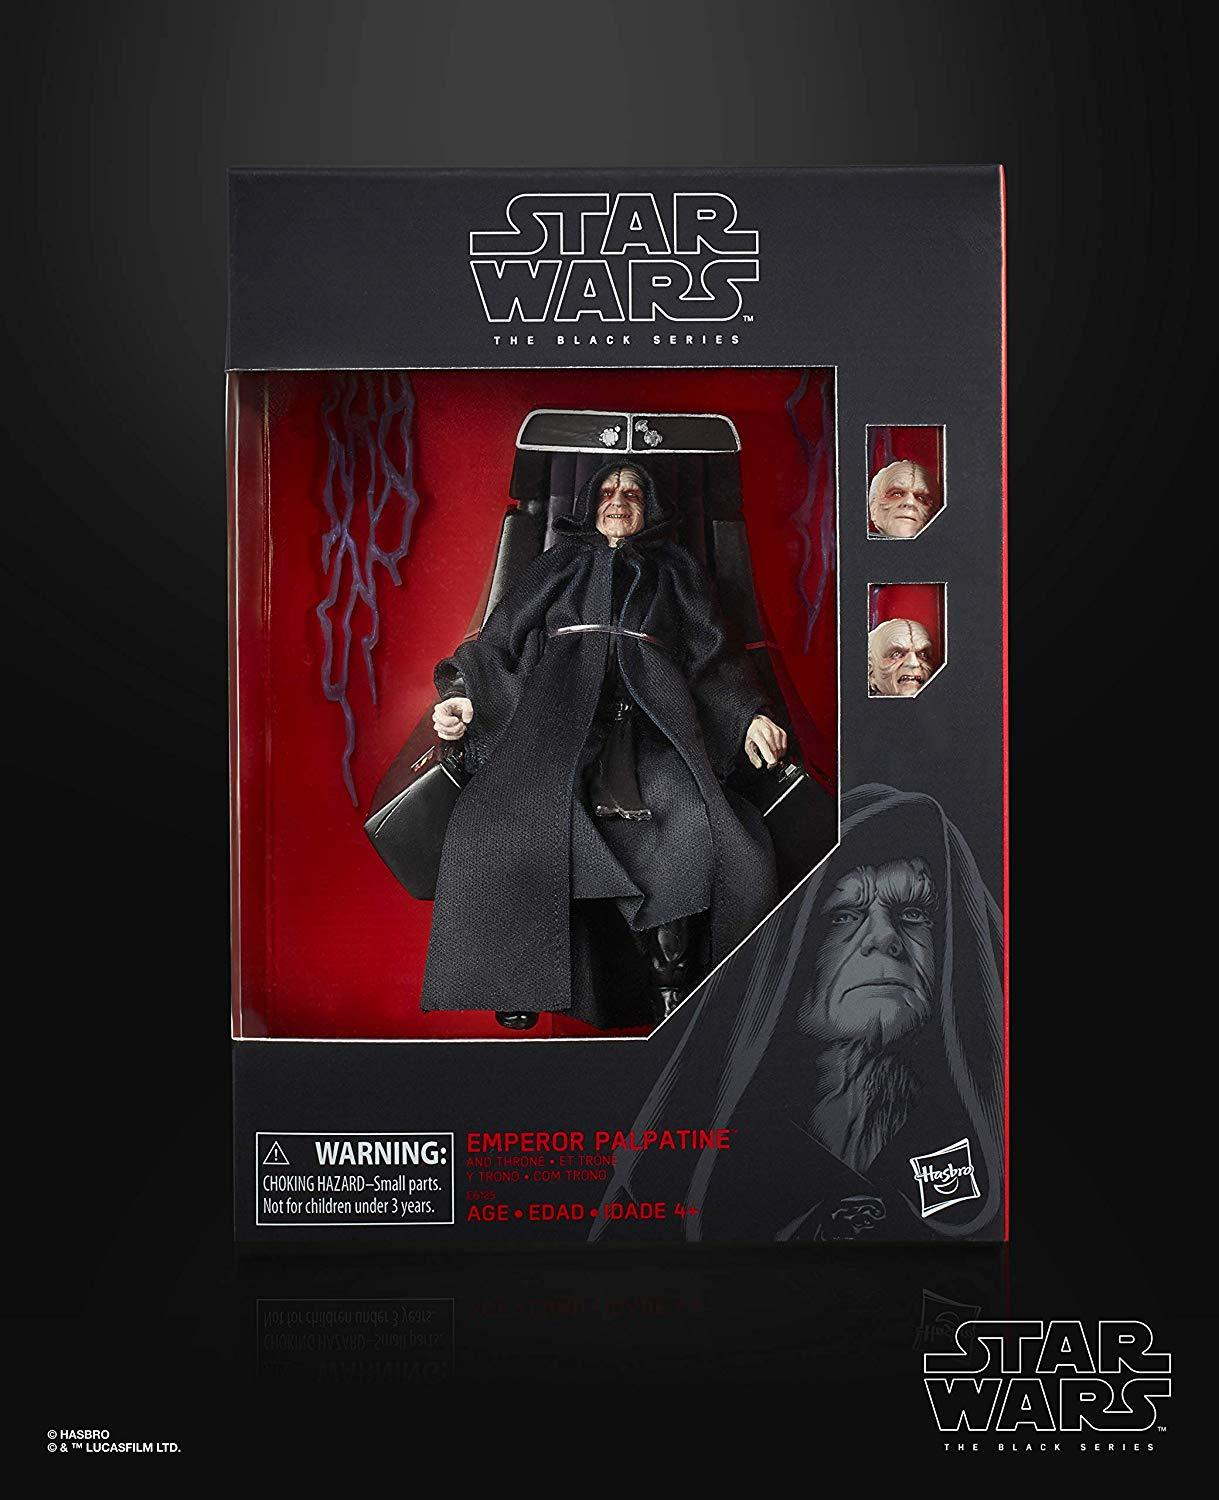 Star Wars The Black Series Emperor Palpatine Action Figure with Throne 6 Inch...